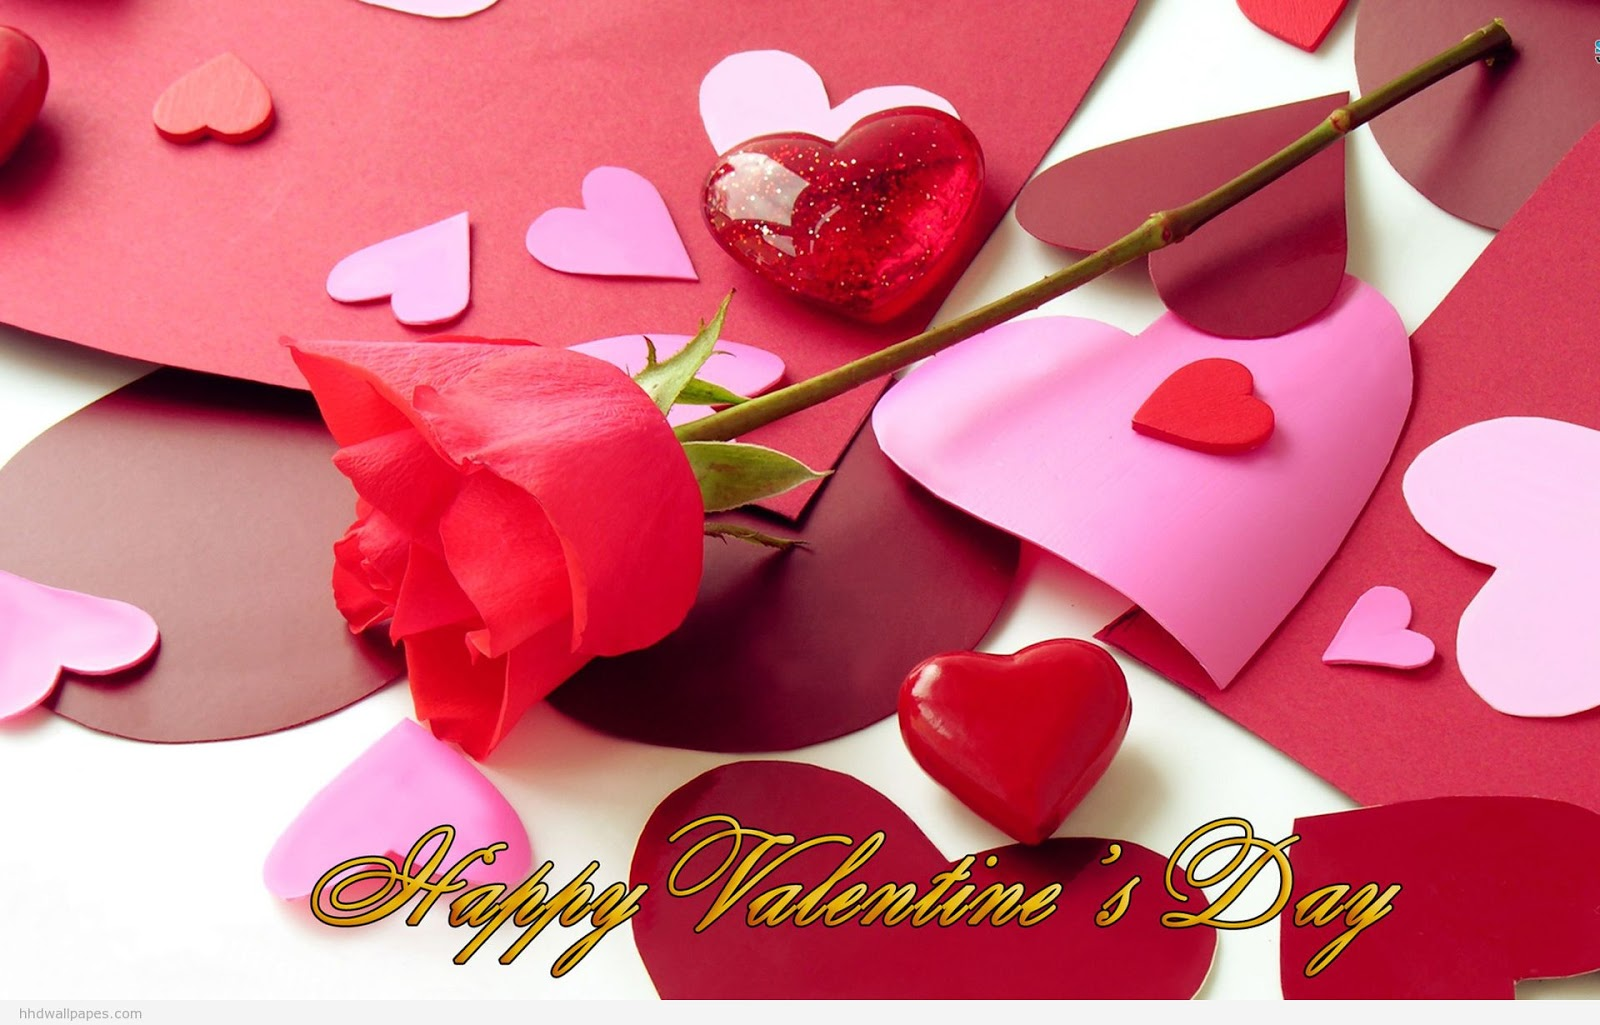 Express Feelings Of Love By Sending Valentine Wishes And Love